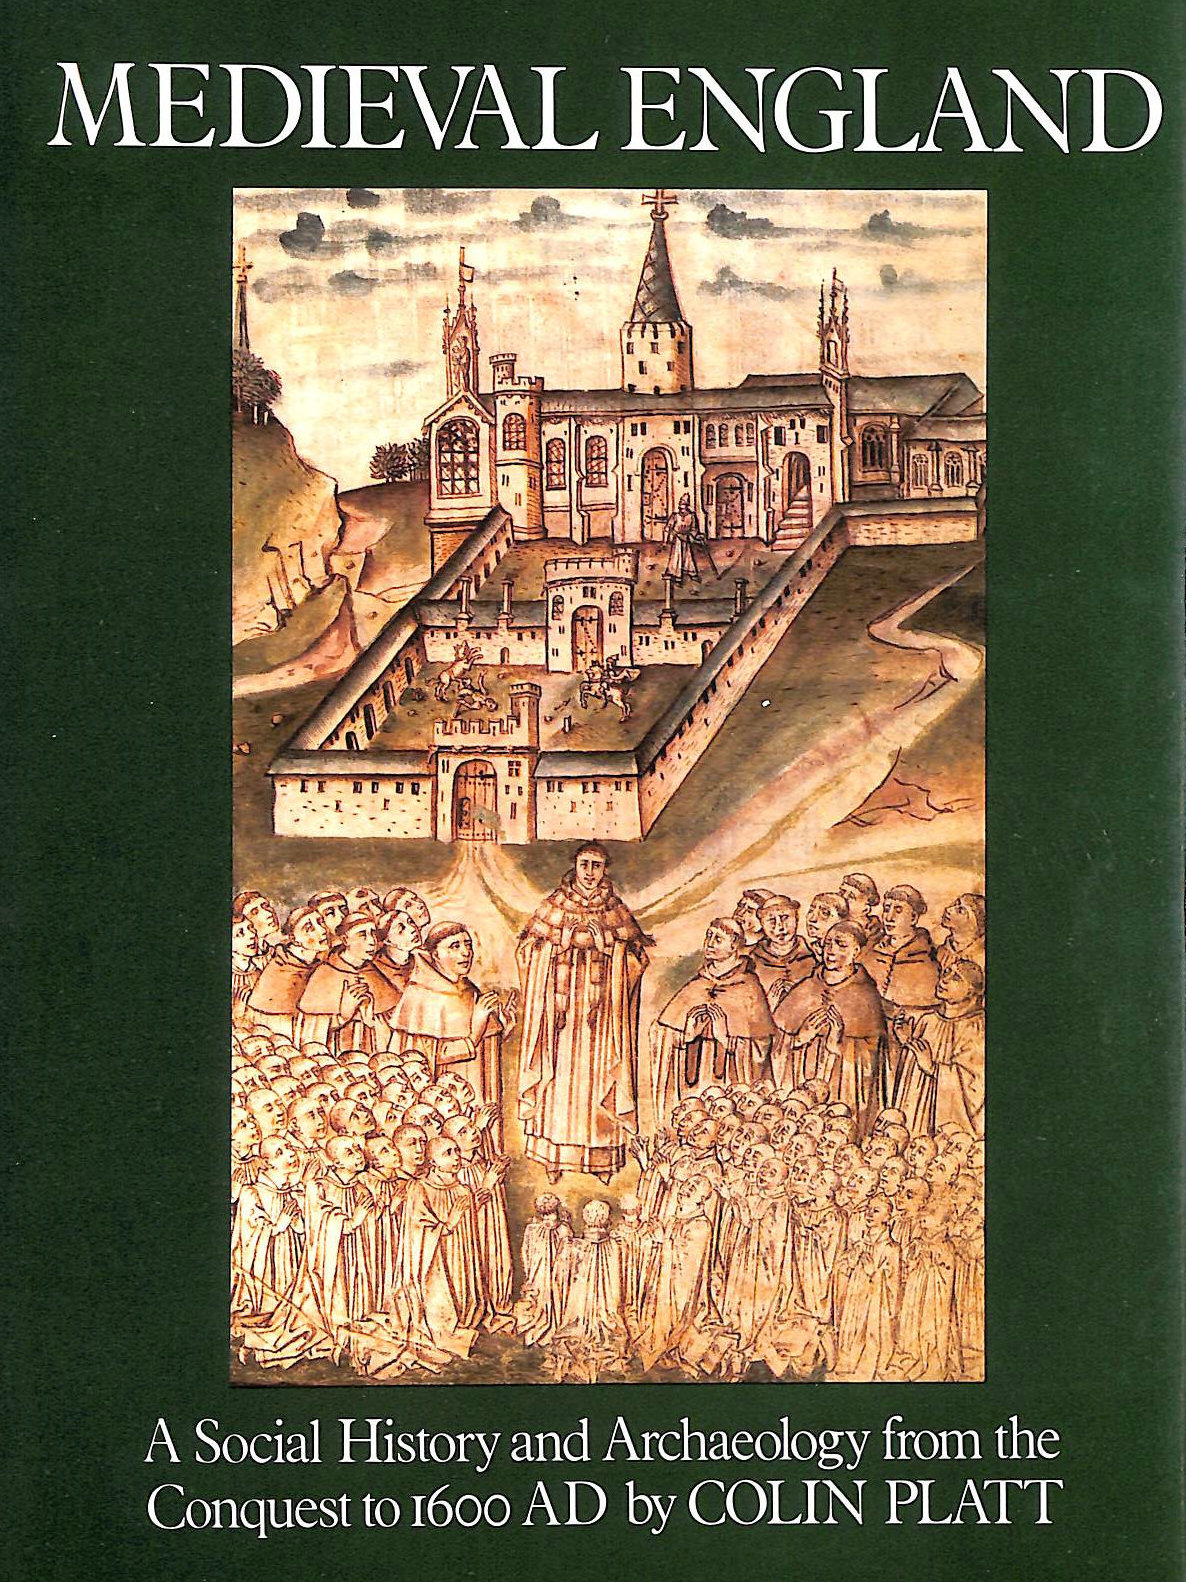 Image for Medieval England: A Social History and Archaeology from the Conquest to A.D. 1600